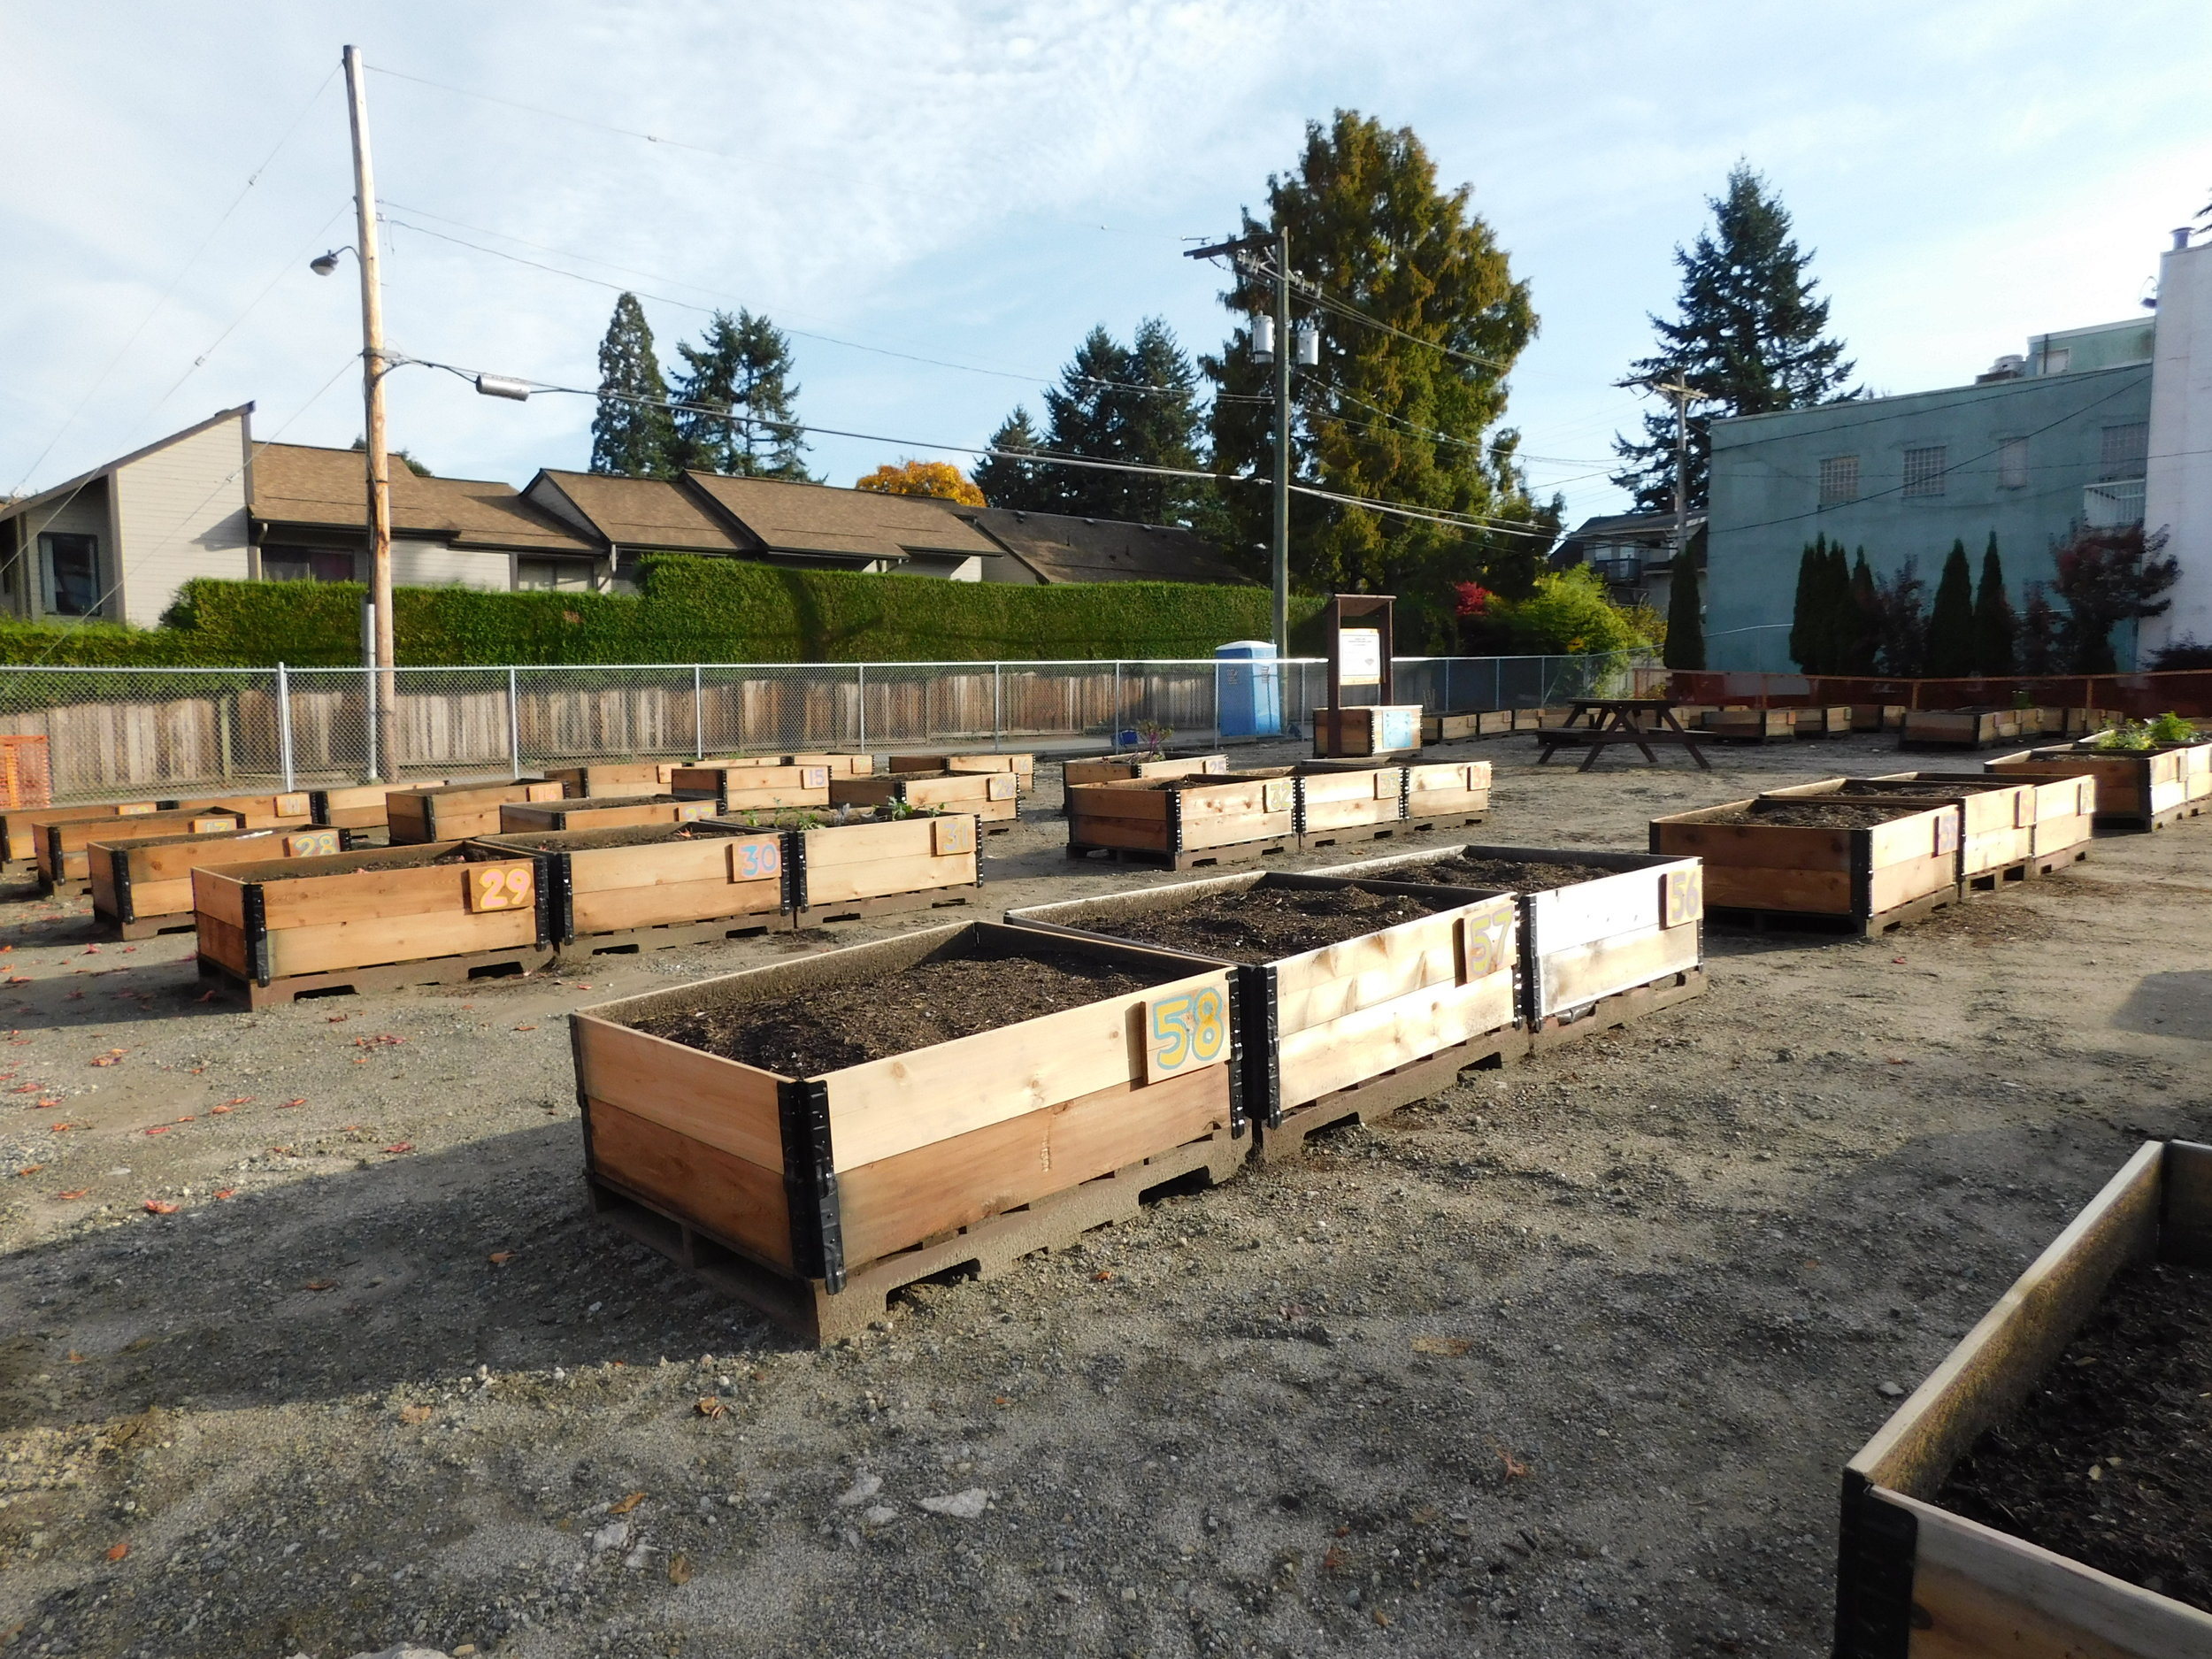 Cambie_16th_Vancouver_Community_Garden_Builders-0011.JPG